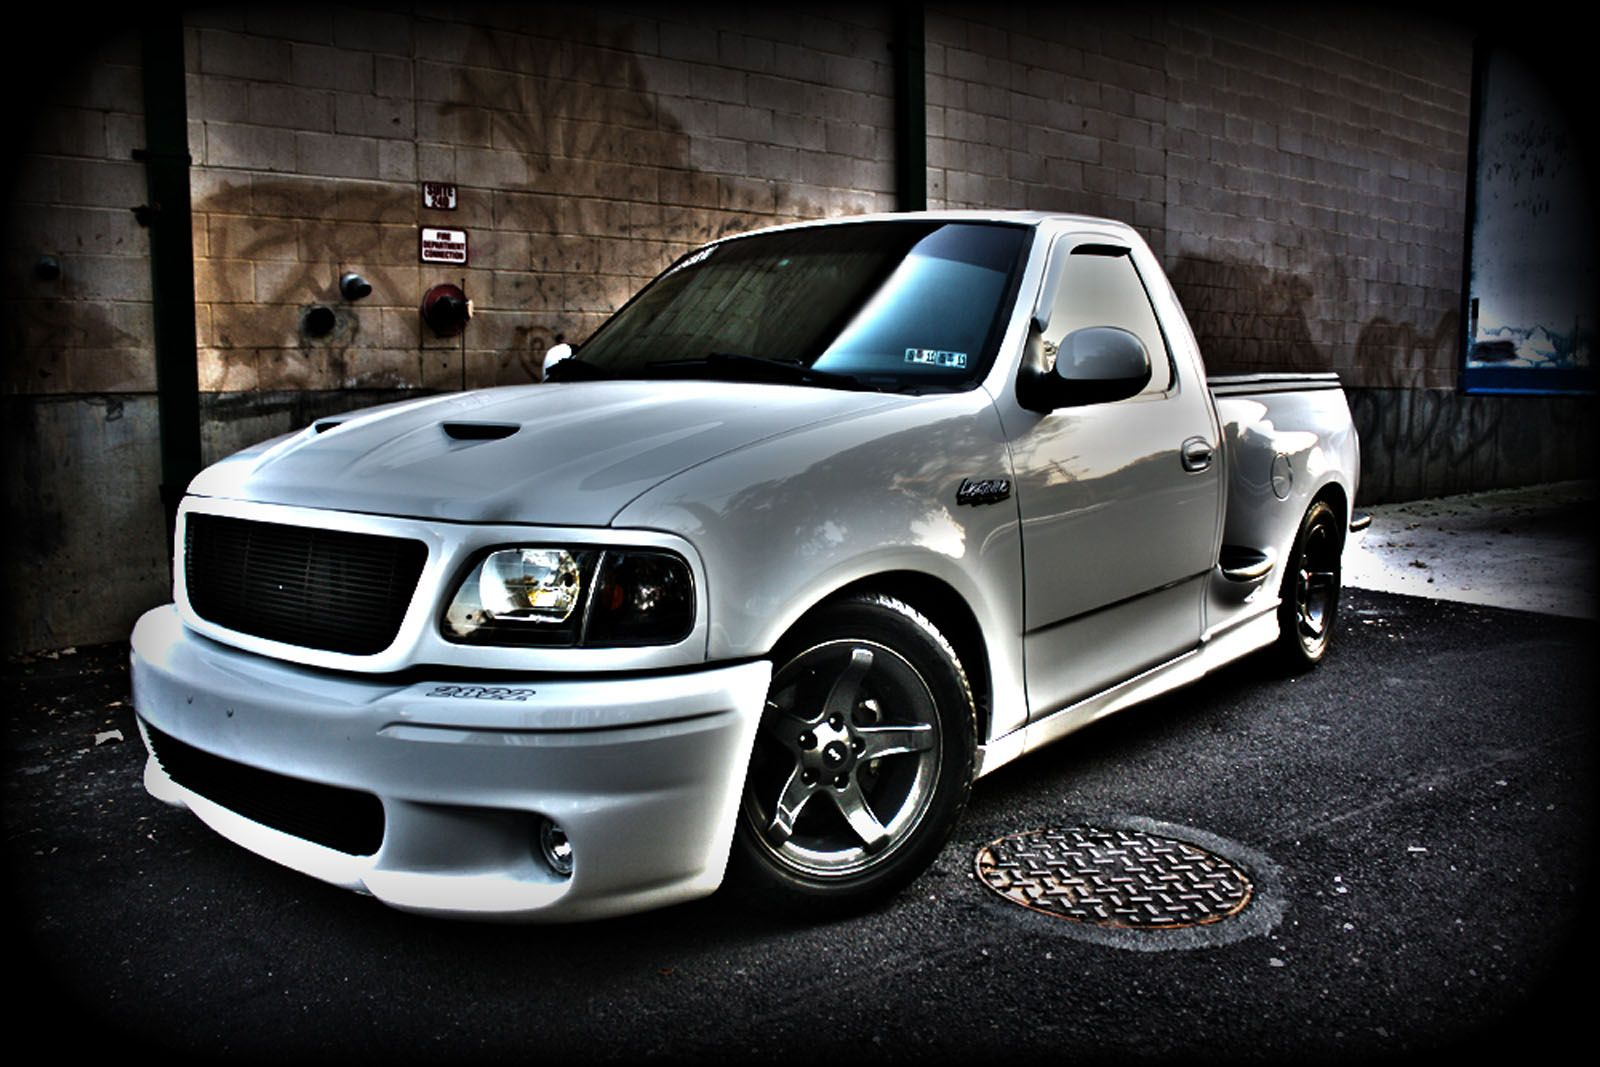 pin by jesse elliott on bad ass rides ford lightning svt rh pinterest com